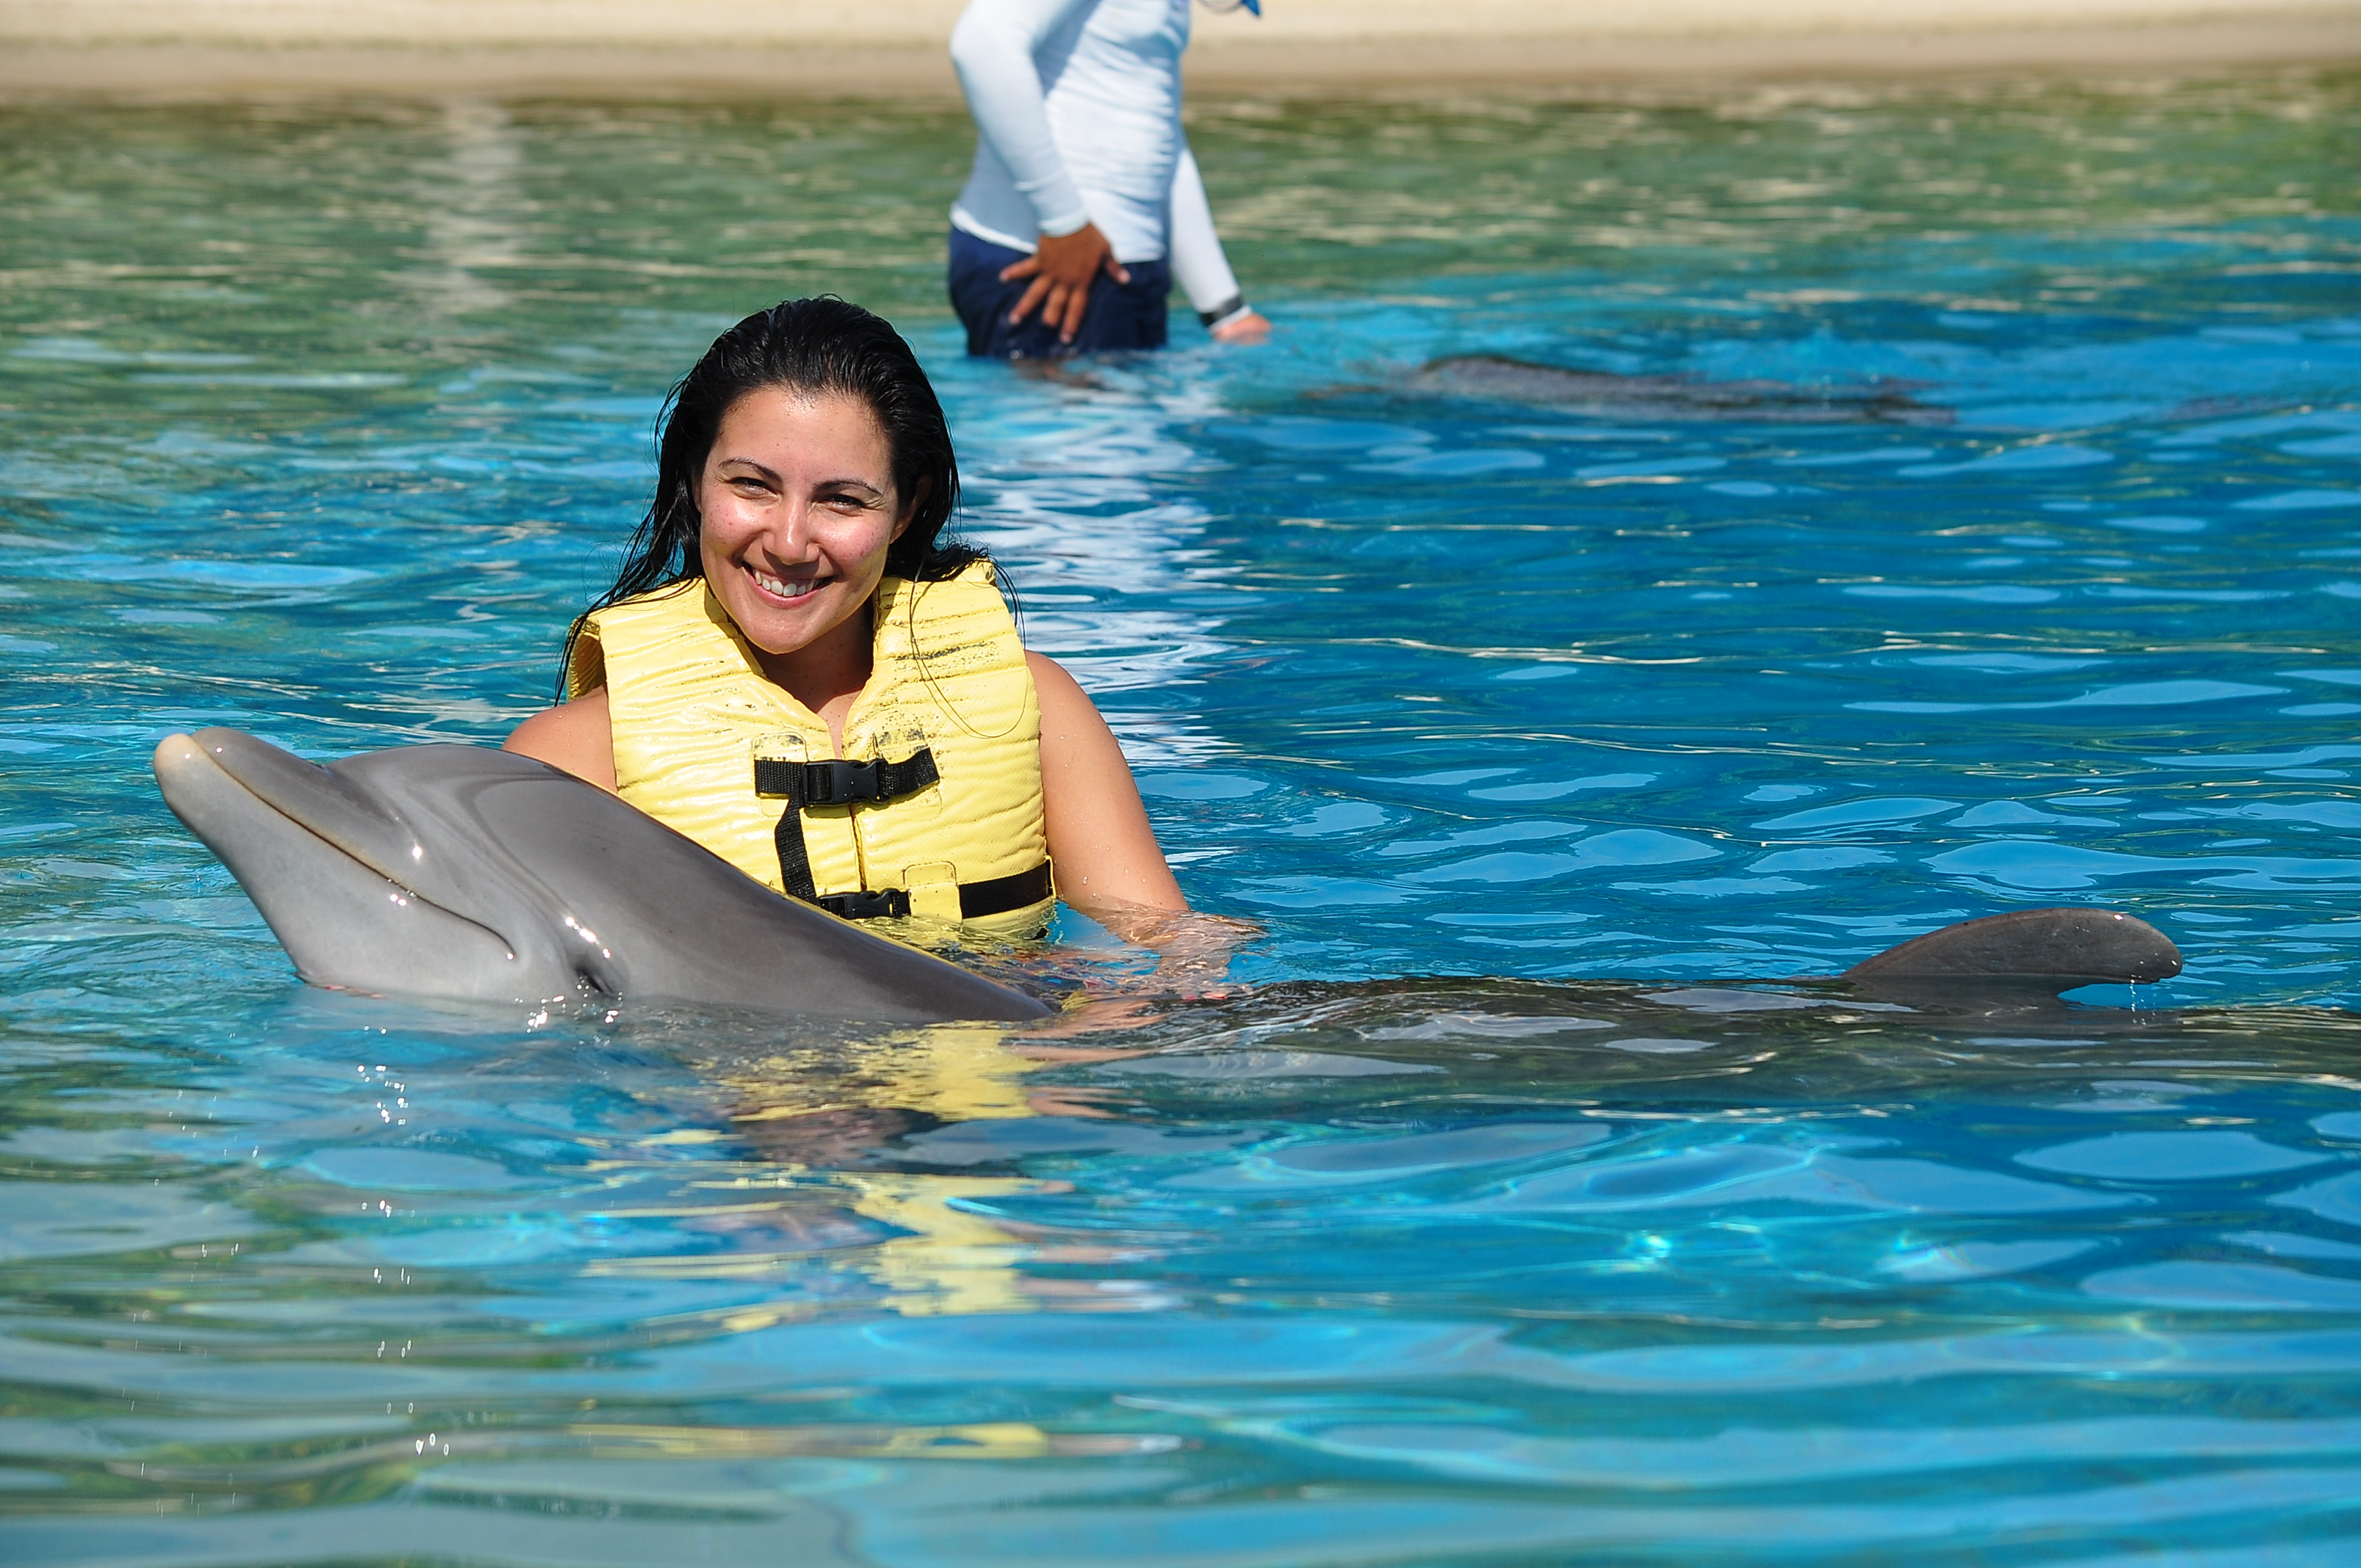 Swimming with dolphins: An incomparable experience